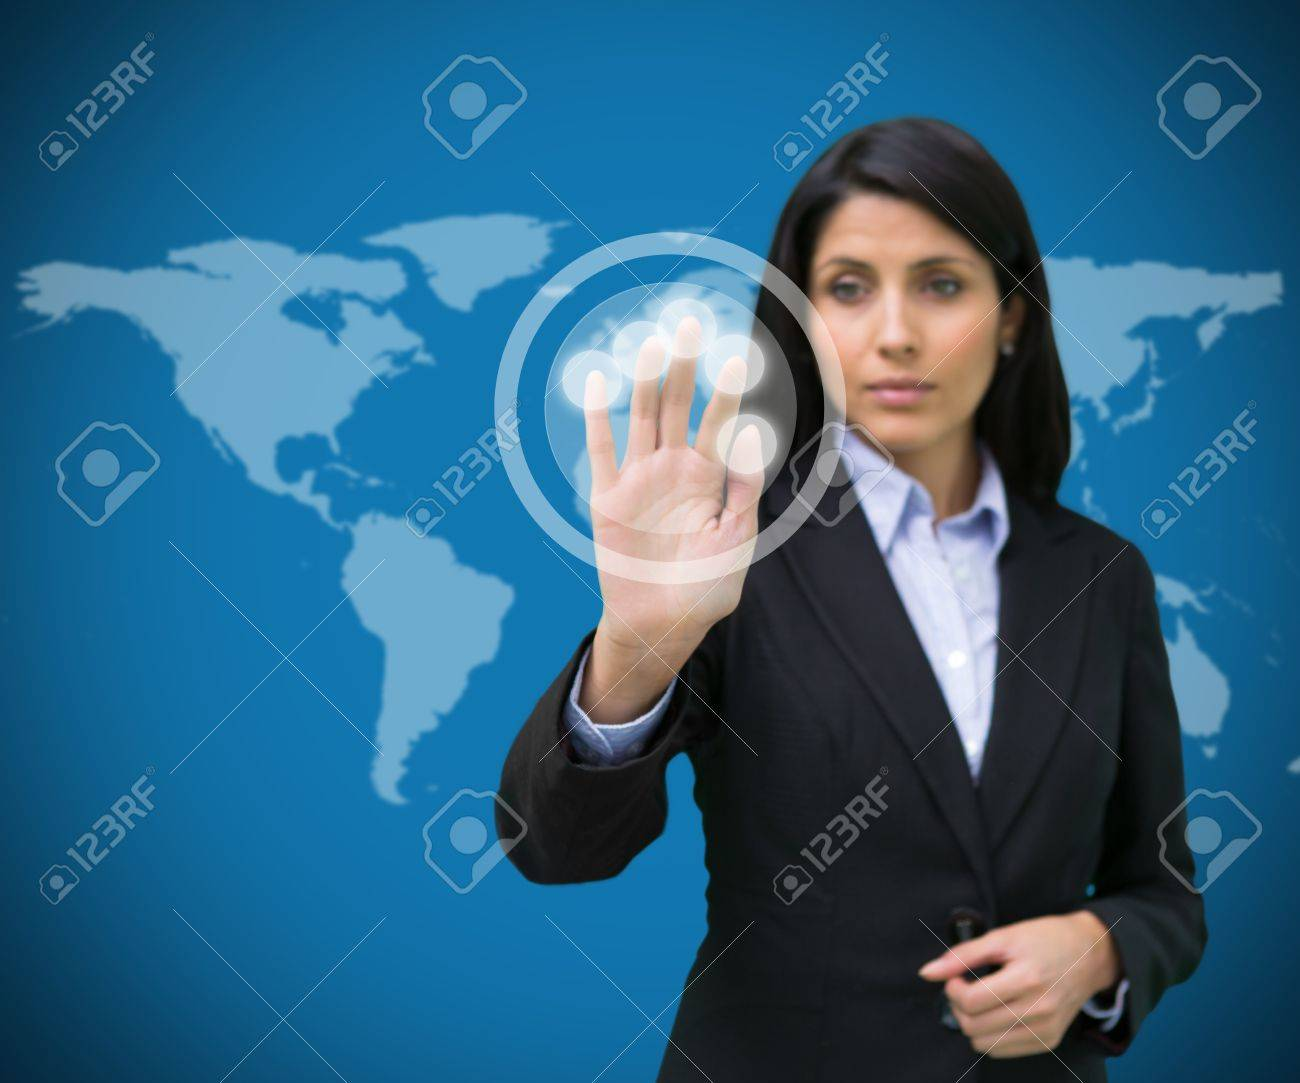 Businesswoman standing touching holographic screen against blue world map background Stock Photo - 16051420